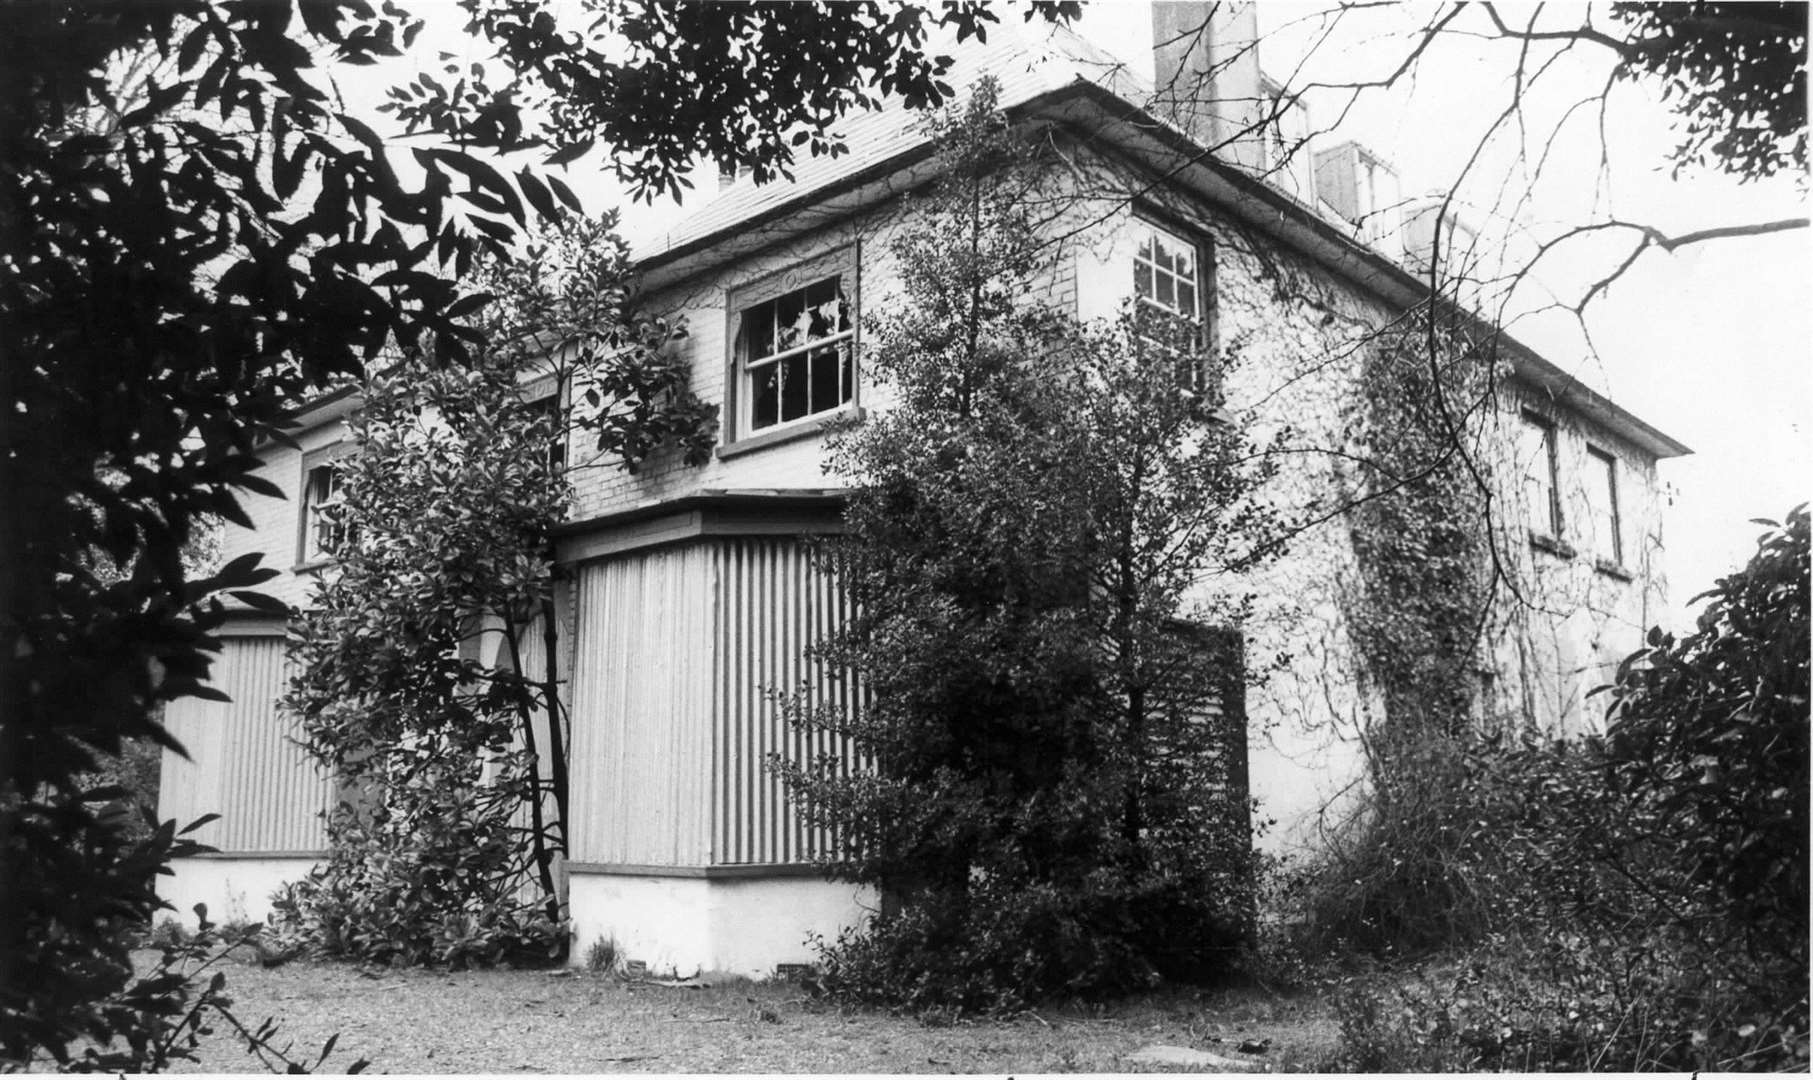 In this picture from 1980, Macklands House in Lower Rainham, which once belonged to Sir John Hawkins